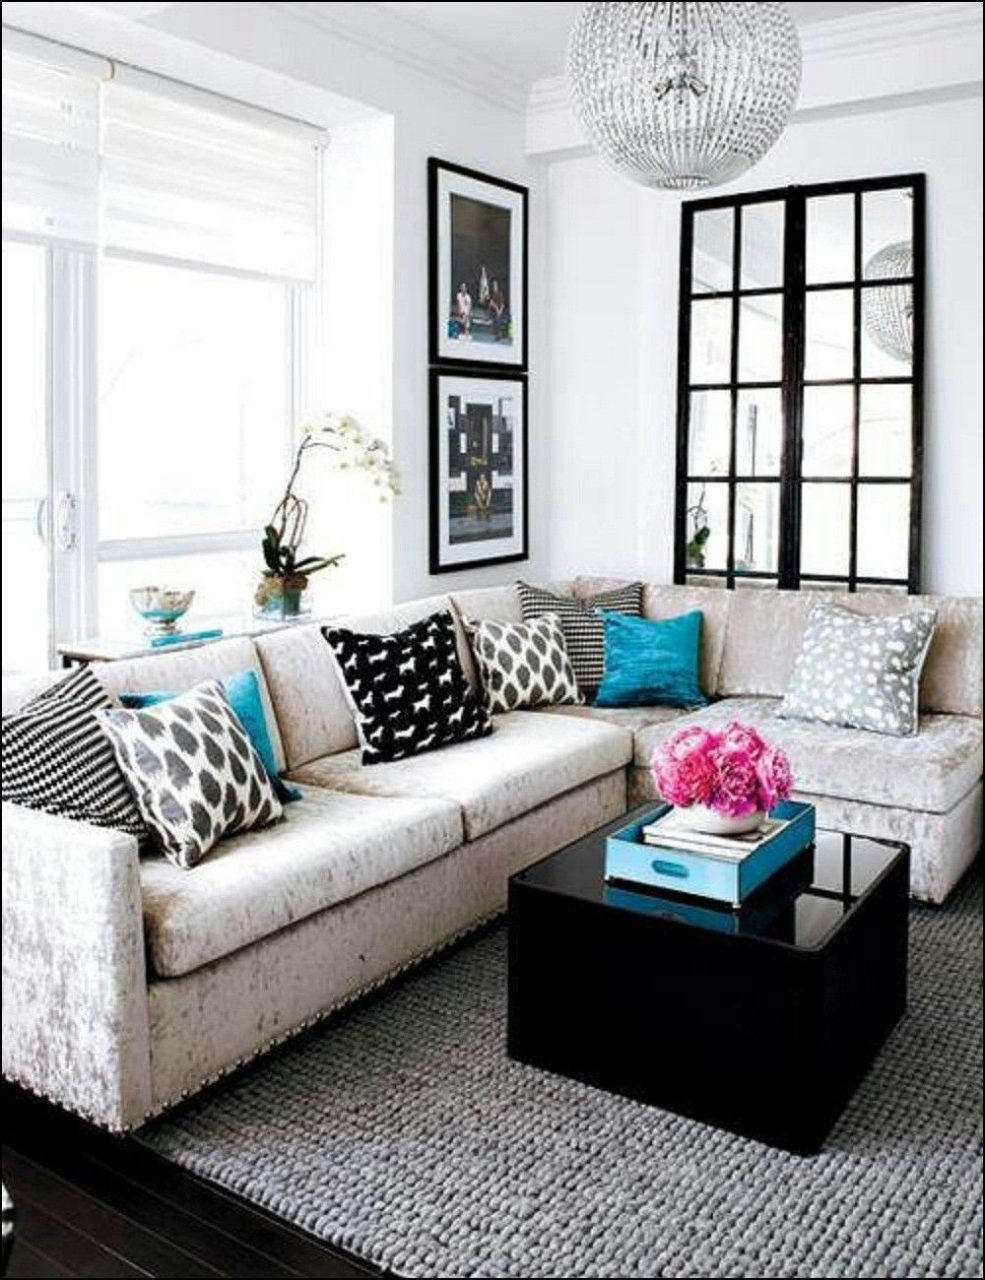 L Shaped Couch For Small Space Couches For Small Spaces Living